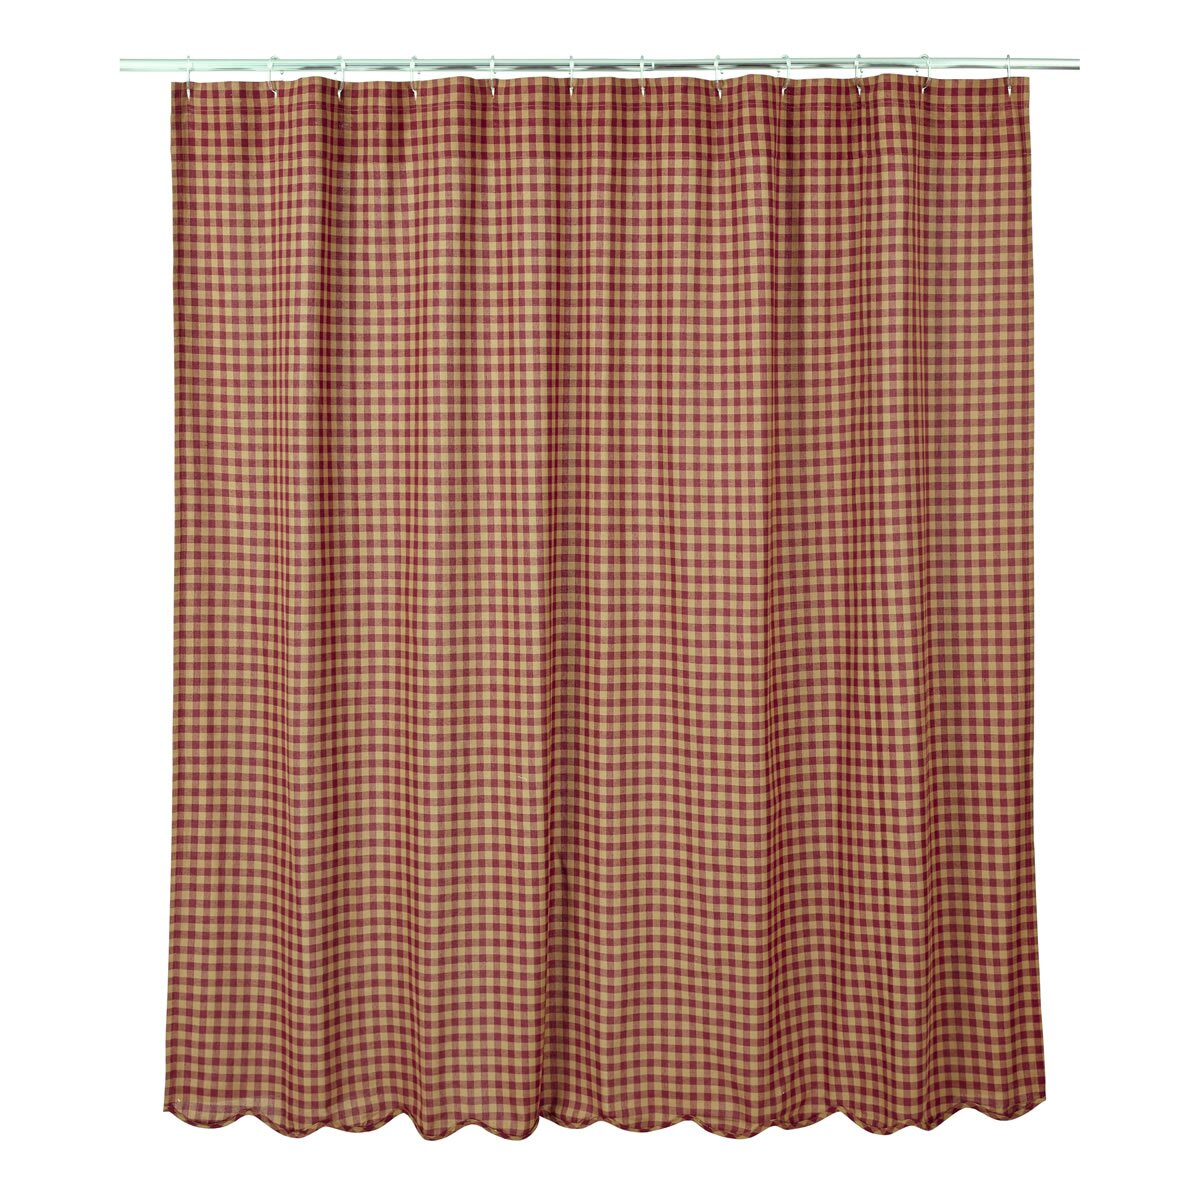 VHC Brands Check Scalloped Cotton Shower Curtain Amp Reviews